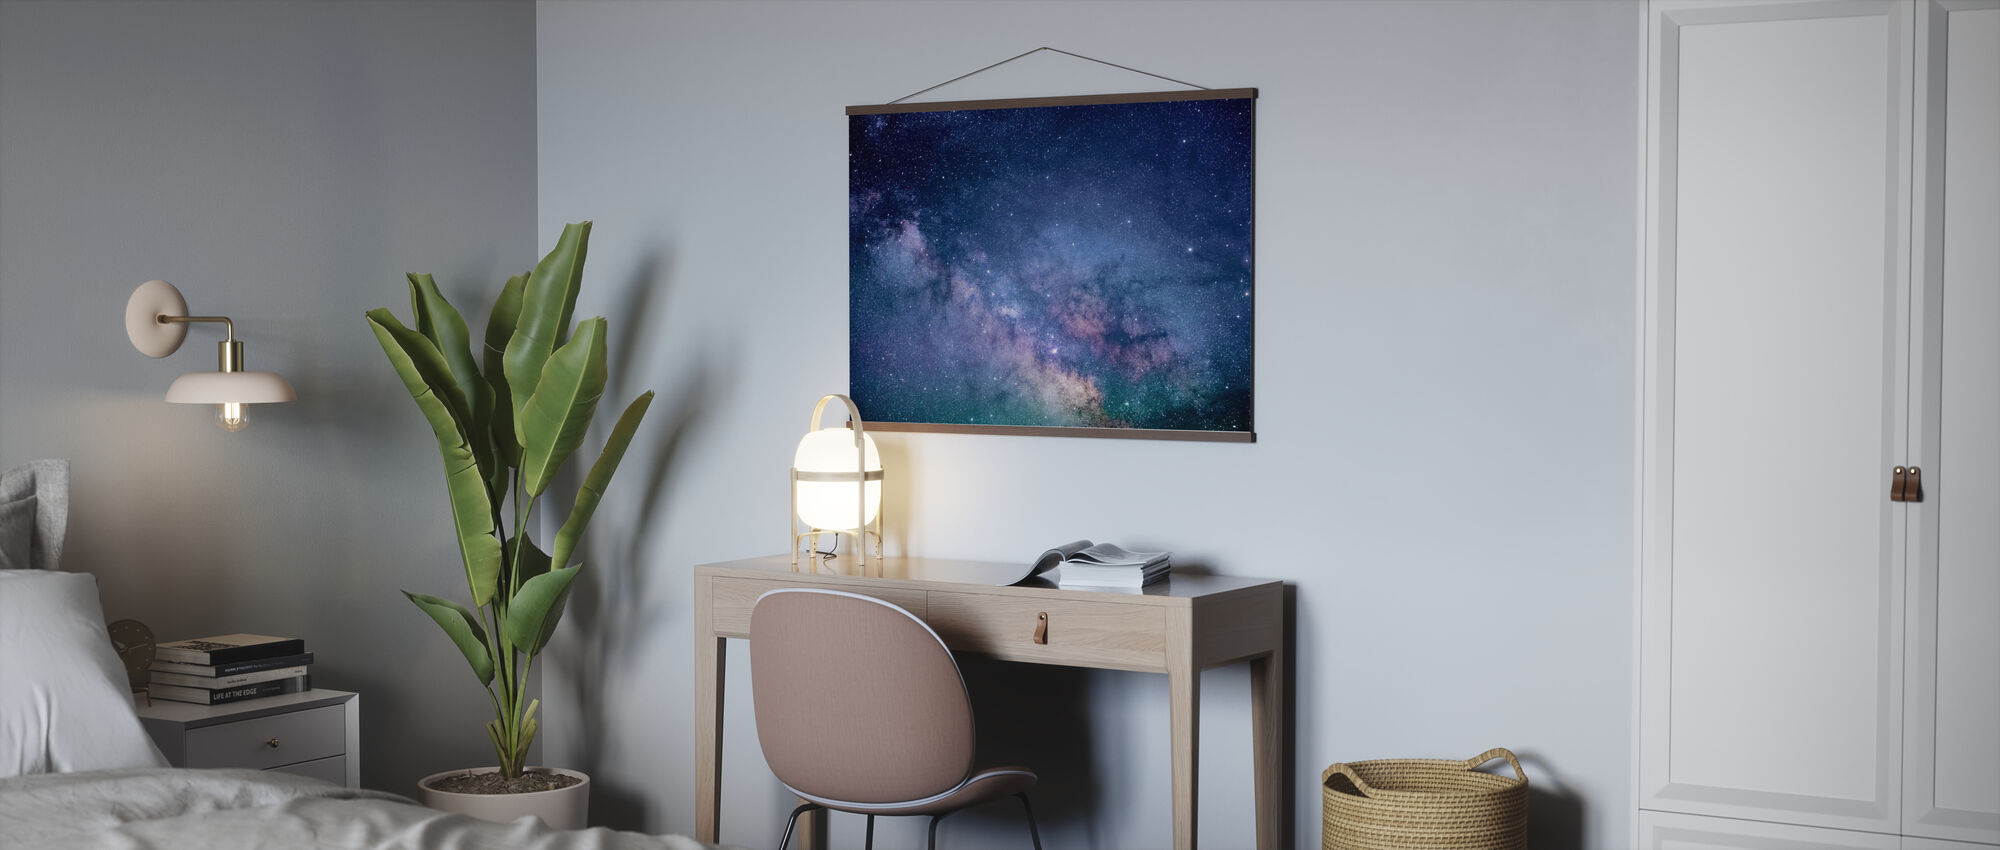 Galaxy Stars - Poster - Office